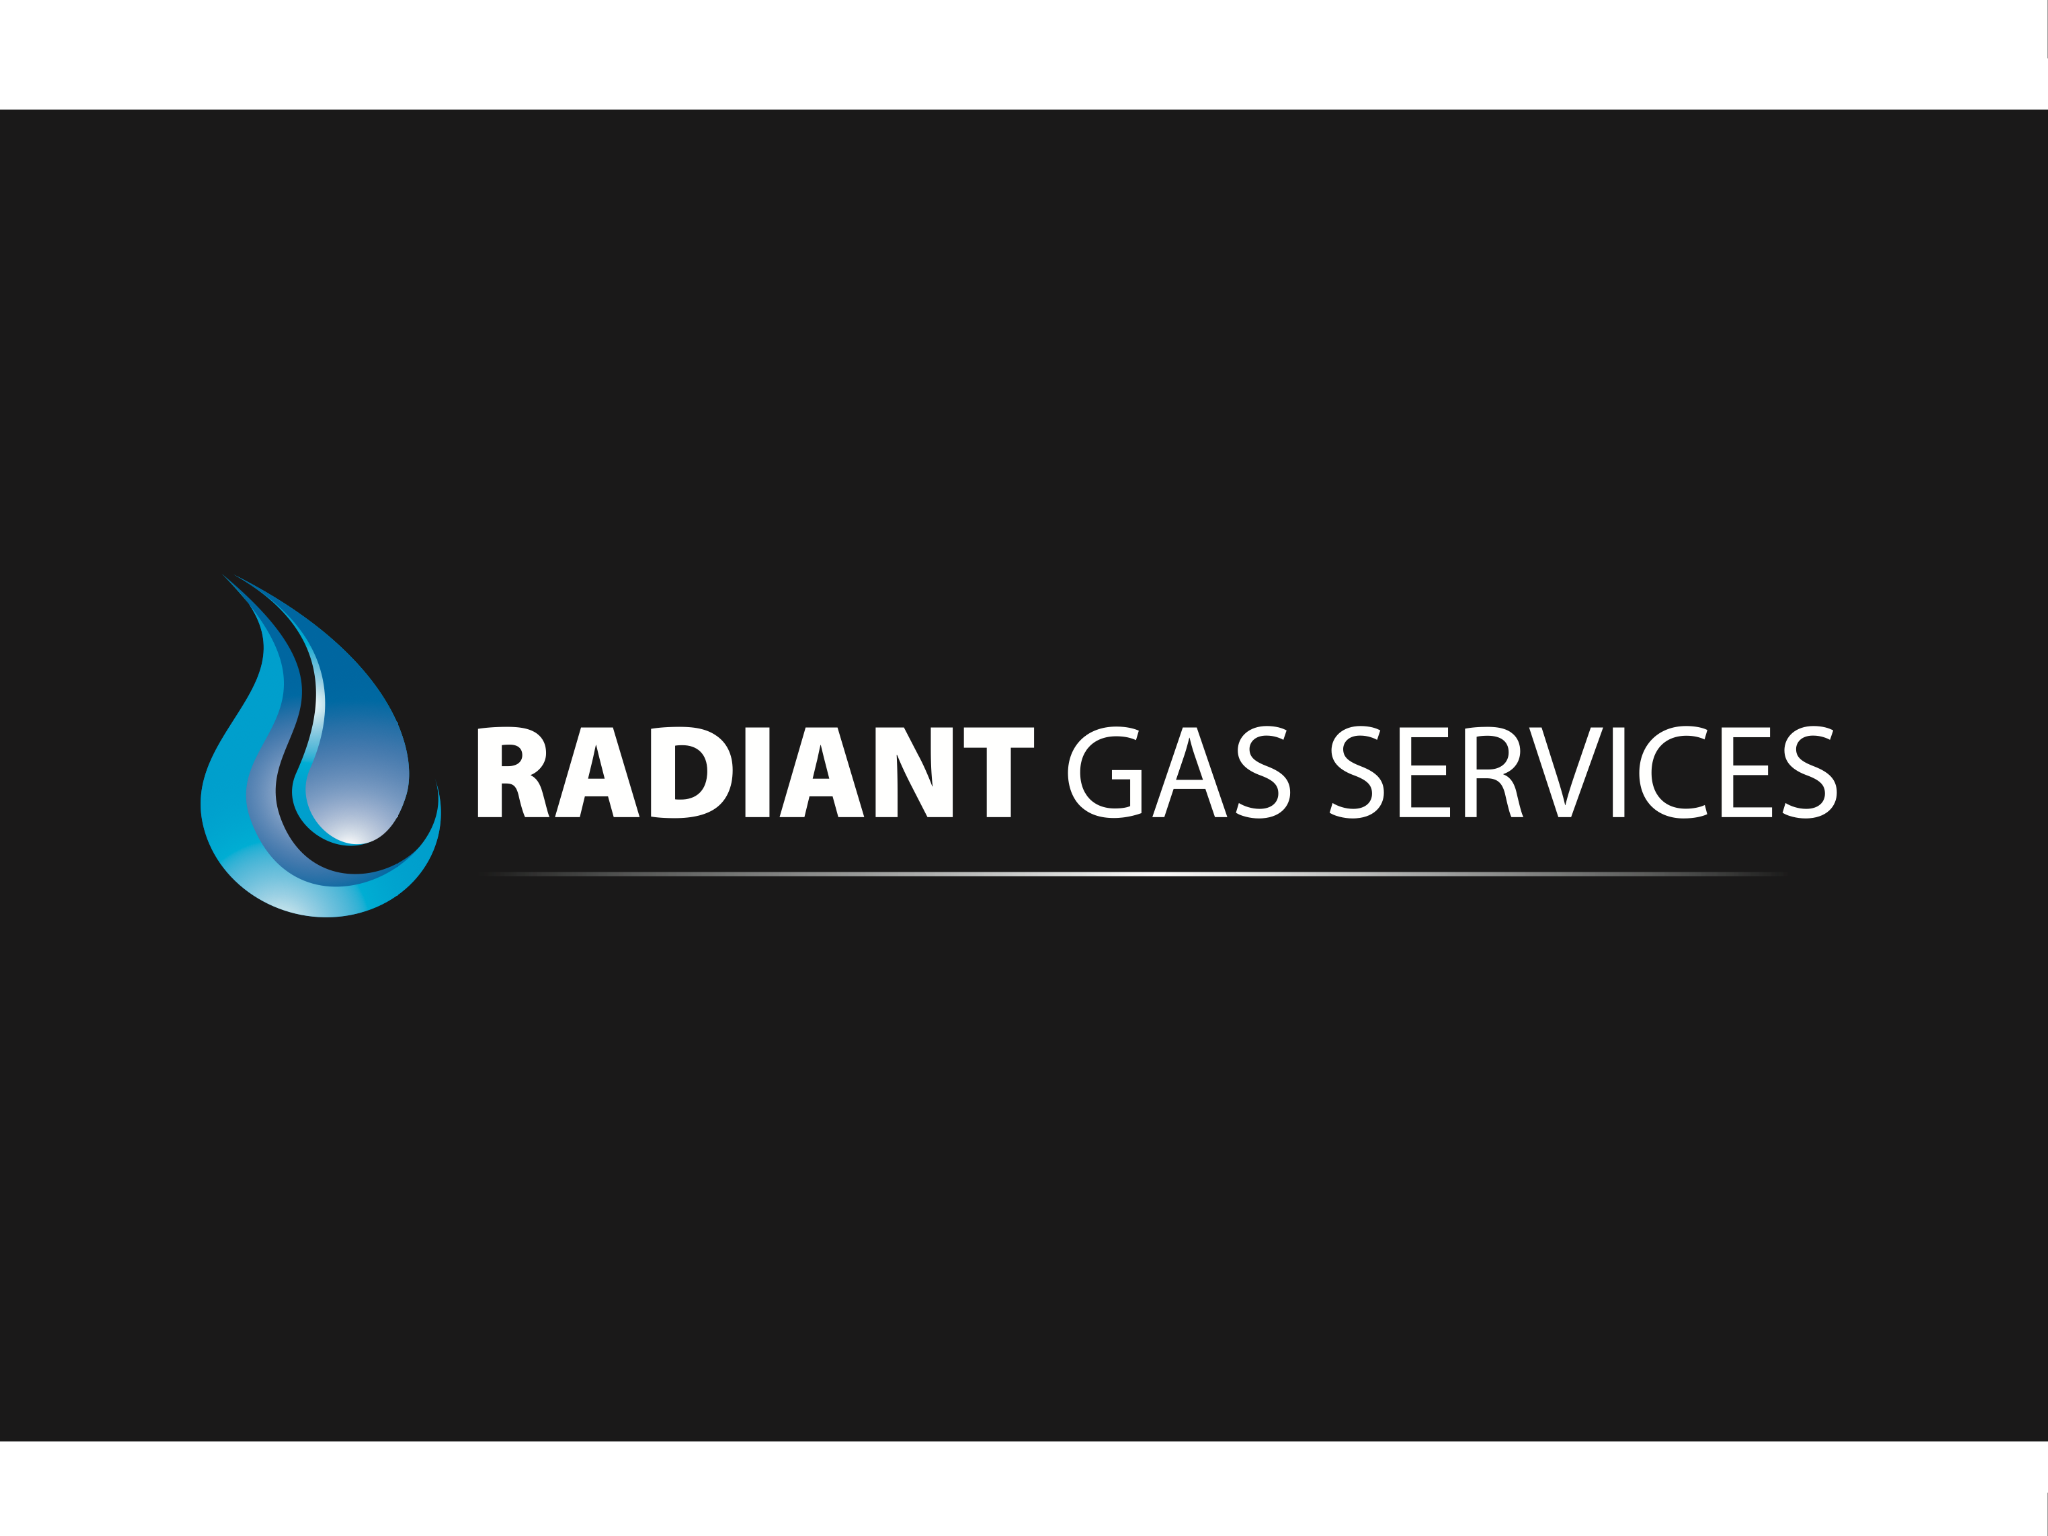 Radiant Gas Services Verified Logo